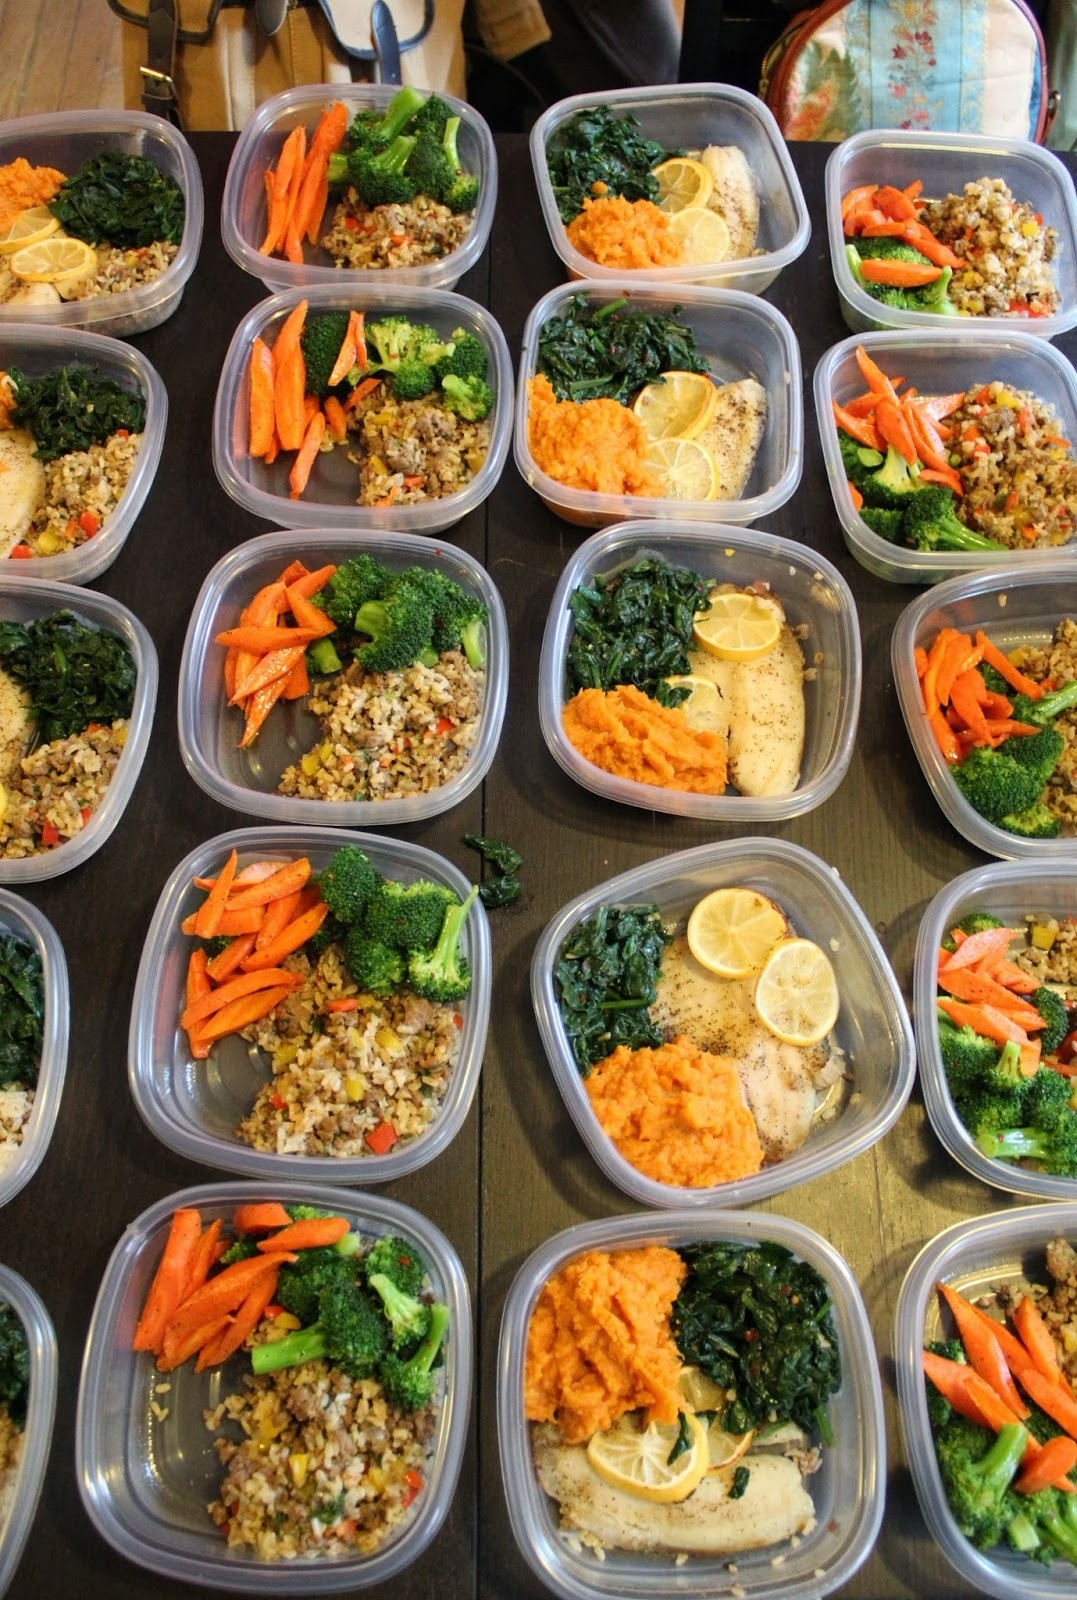 Easy Healthy Dinner  Healthy Meal Prep Ideas For The WeekWritings and Papers